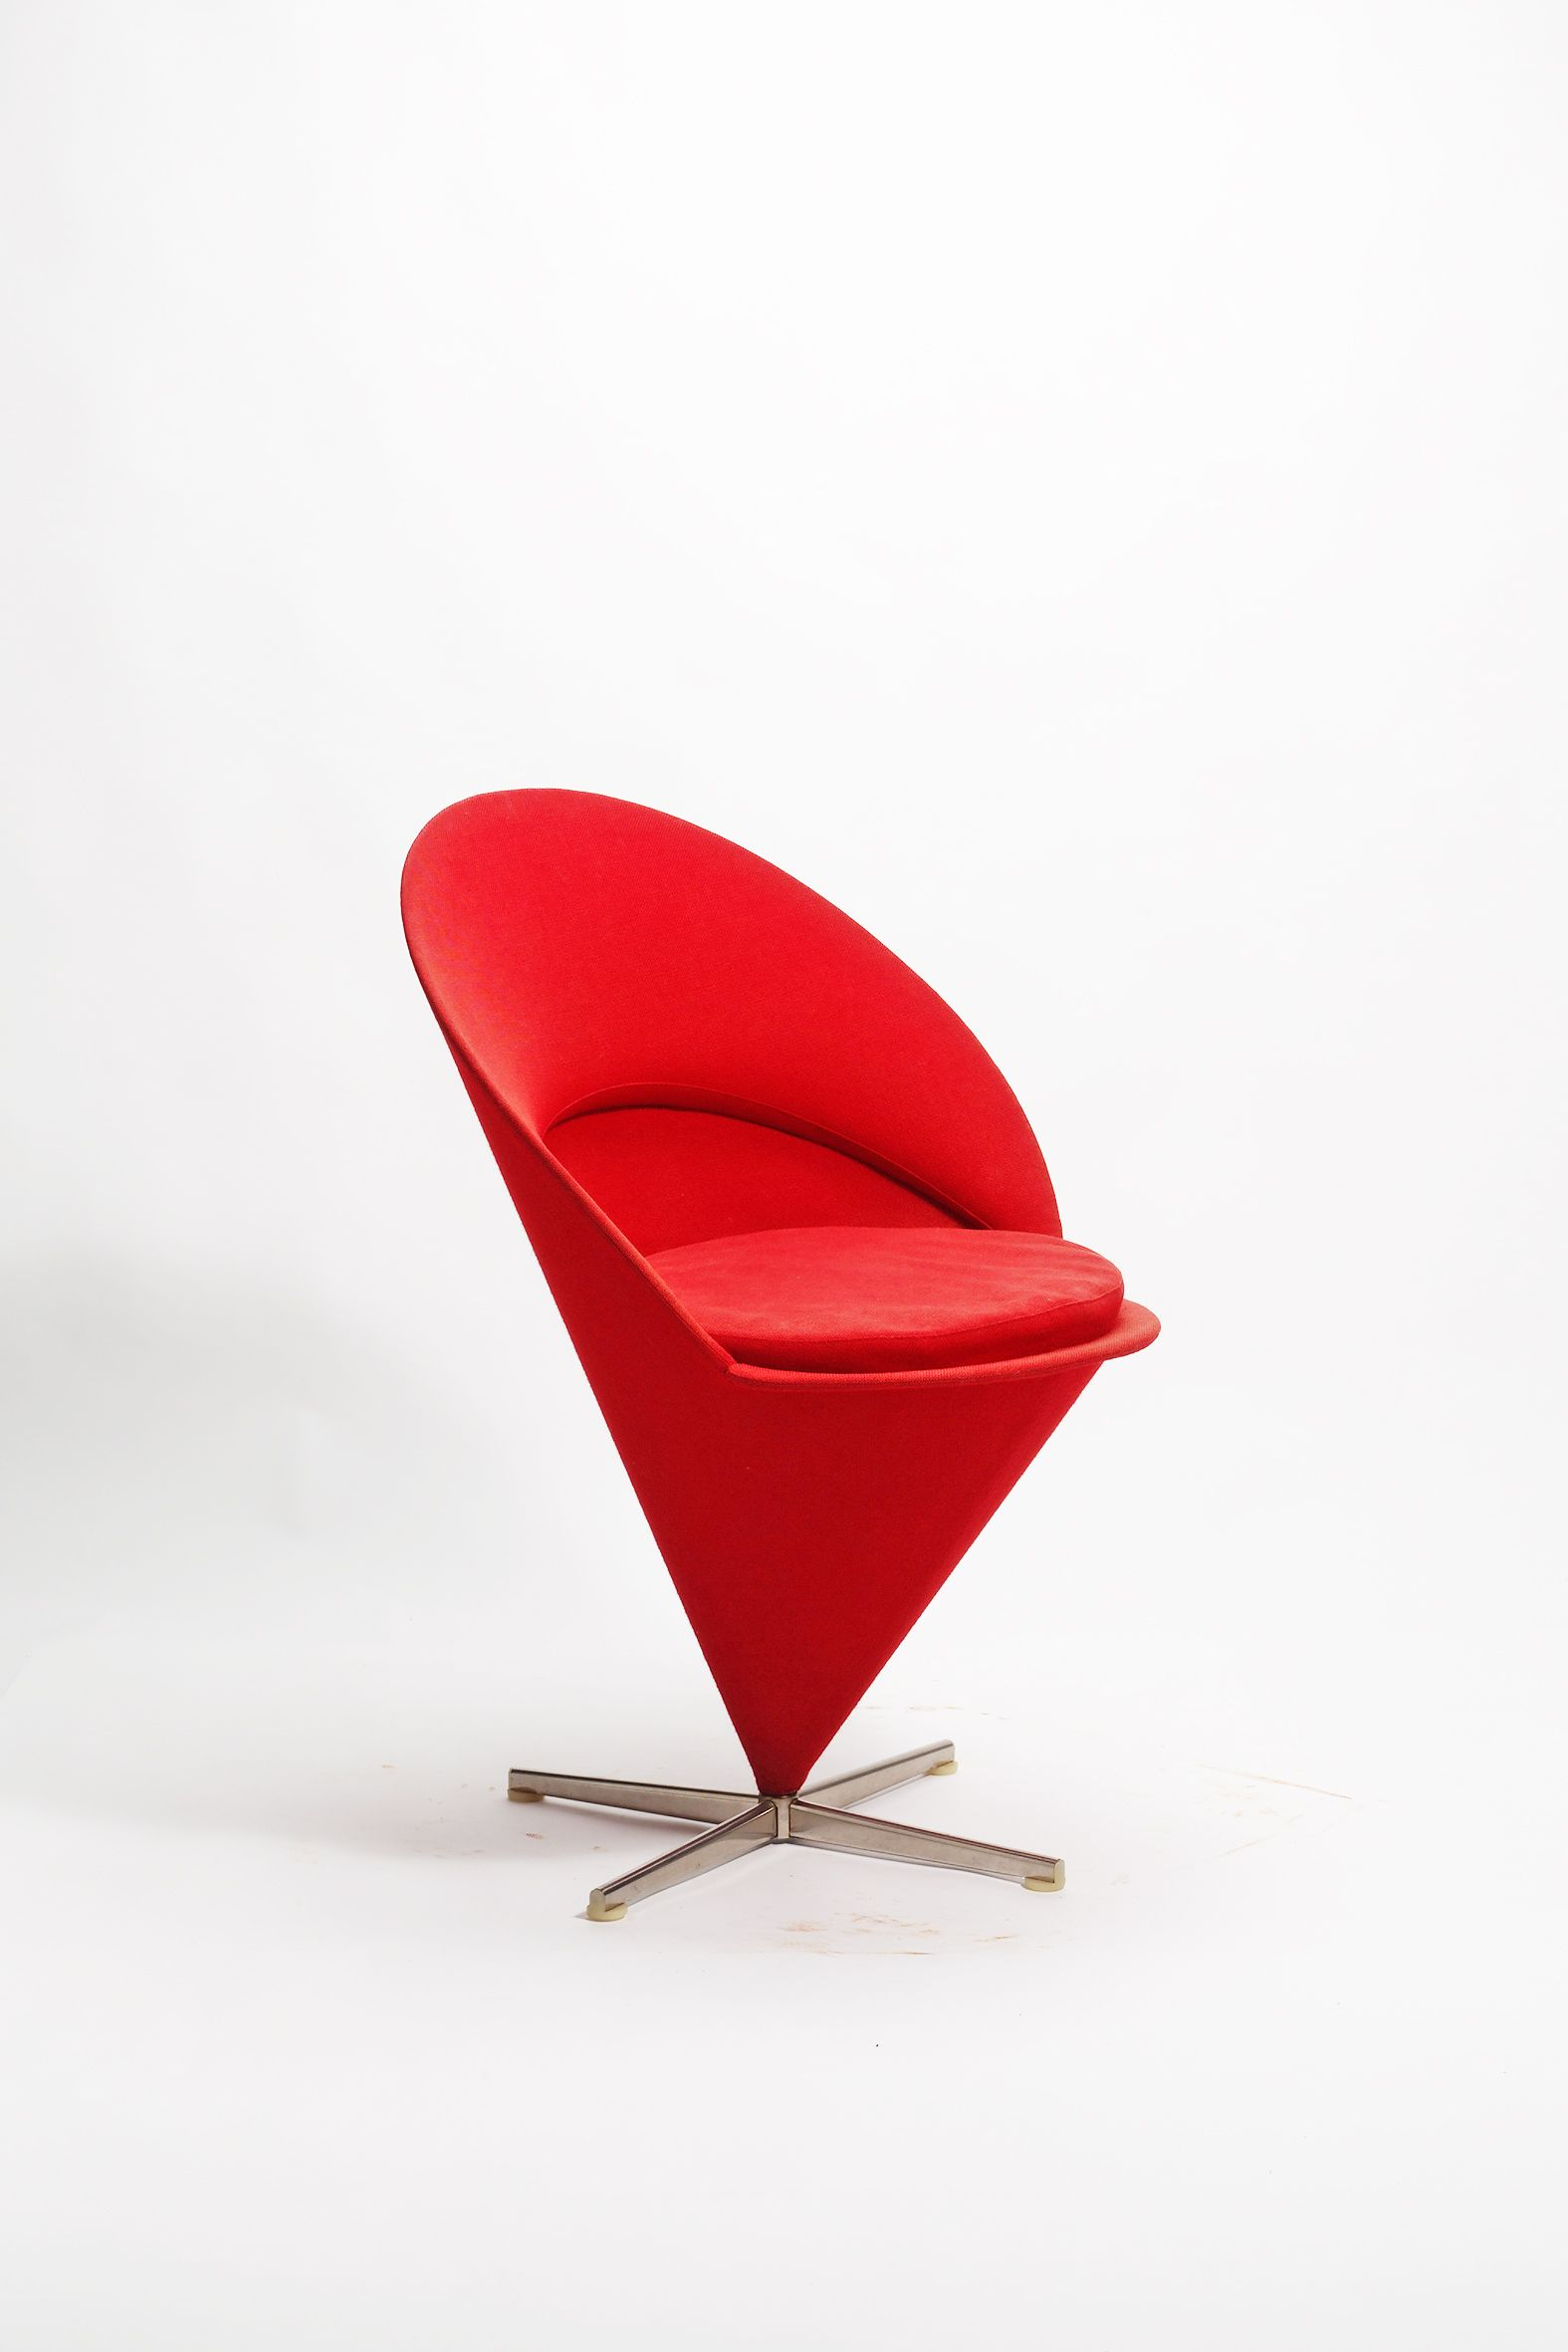 Verner Panton, Cone Chair   This Is So U0027atomic Ageu0027 Jetsonu0027s Style. I Can  Imagine Sitting In This Chair, And Feeling I Am About To Orbit Into The ...